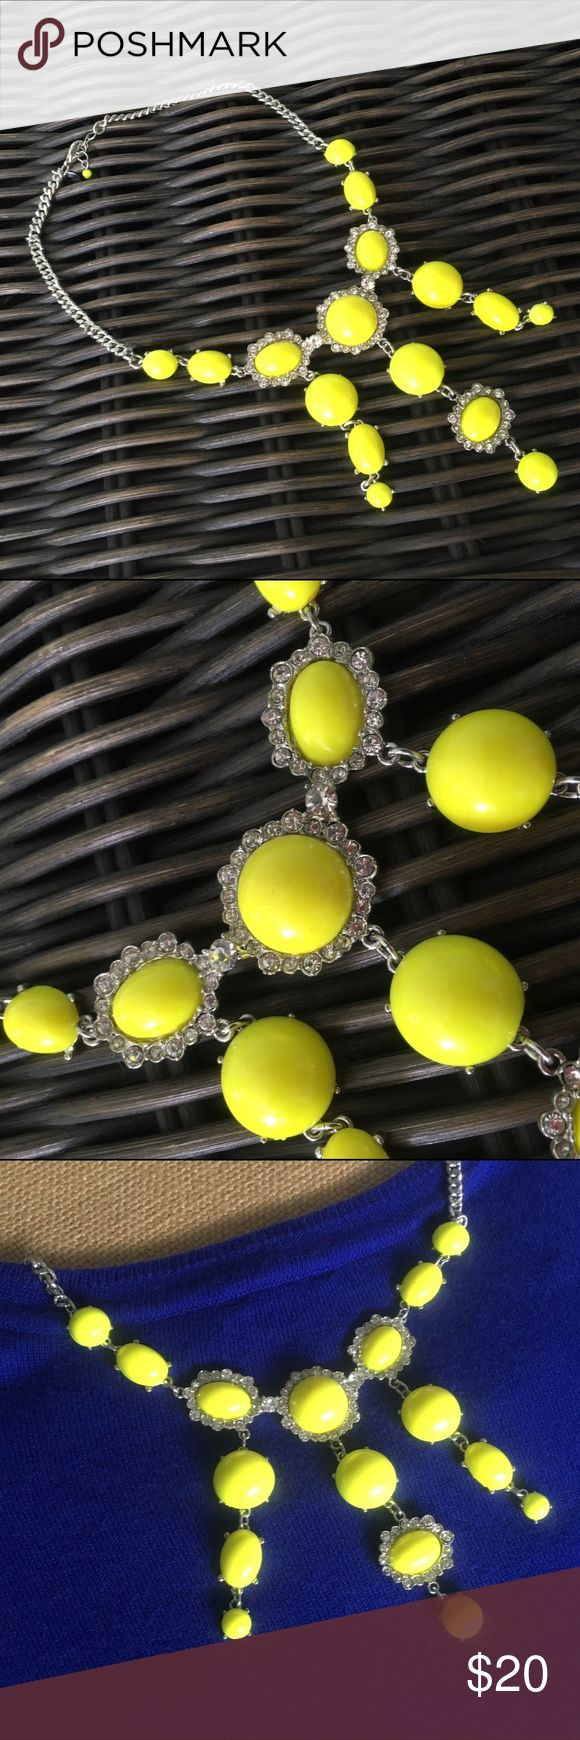 Express Neon Yellow Bubble Necklace Never worn. Great condition. MK sandals are also available for sale on a different listing. Express Jewelry Necklaces